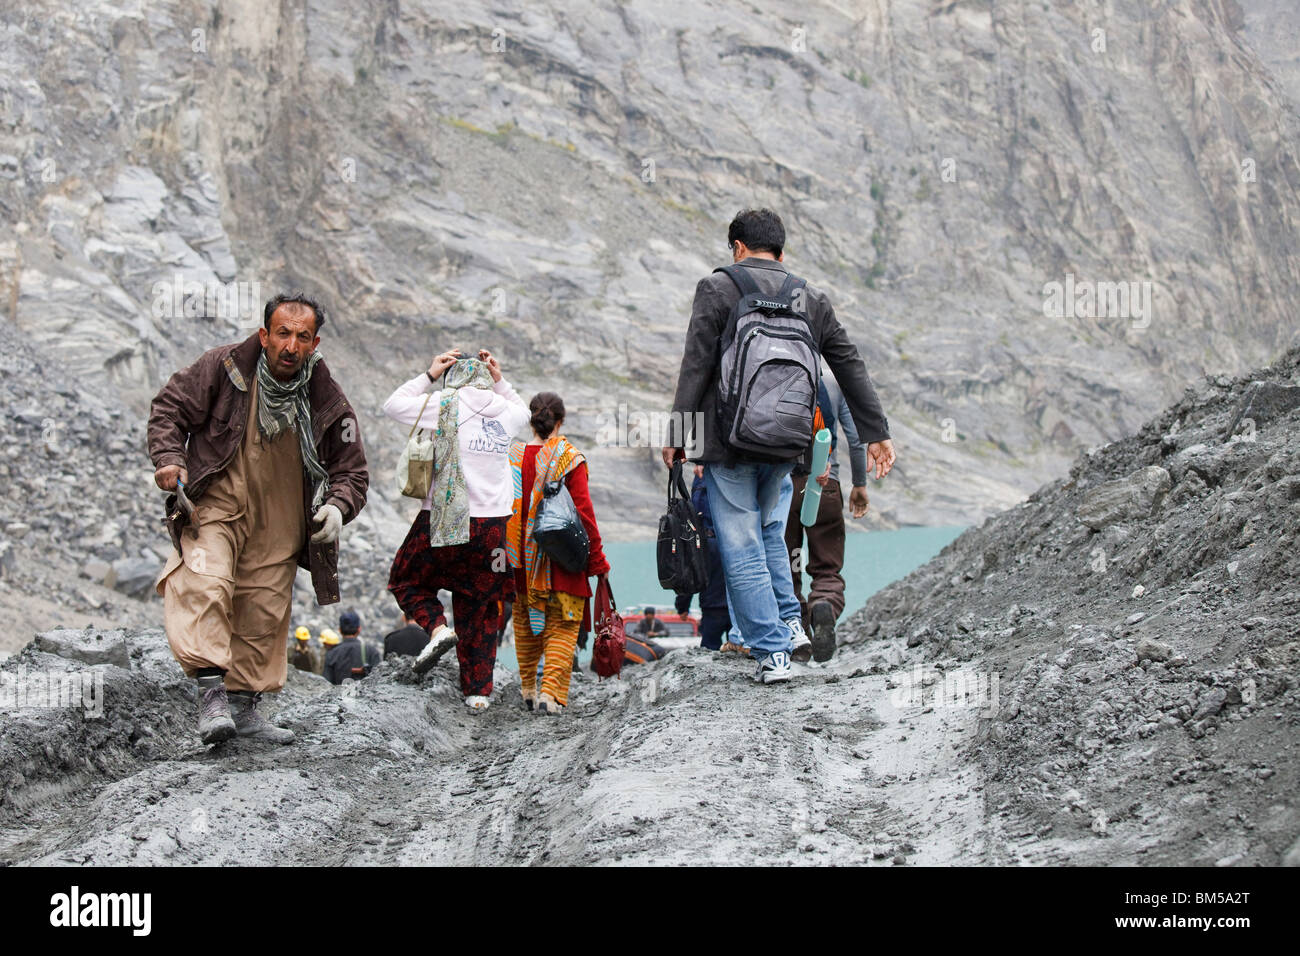 Workers at the landslide area at Attabad which blocks the Karakoram Highway, Hunza, Pakistan - Stock Image